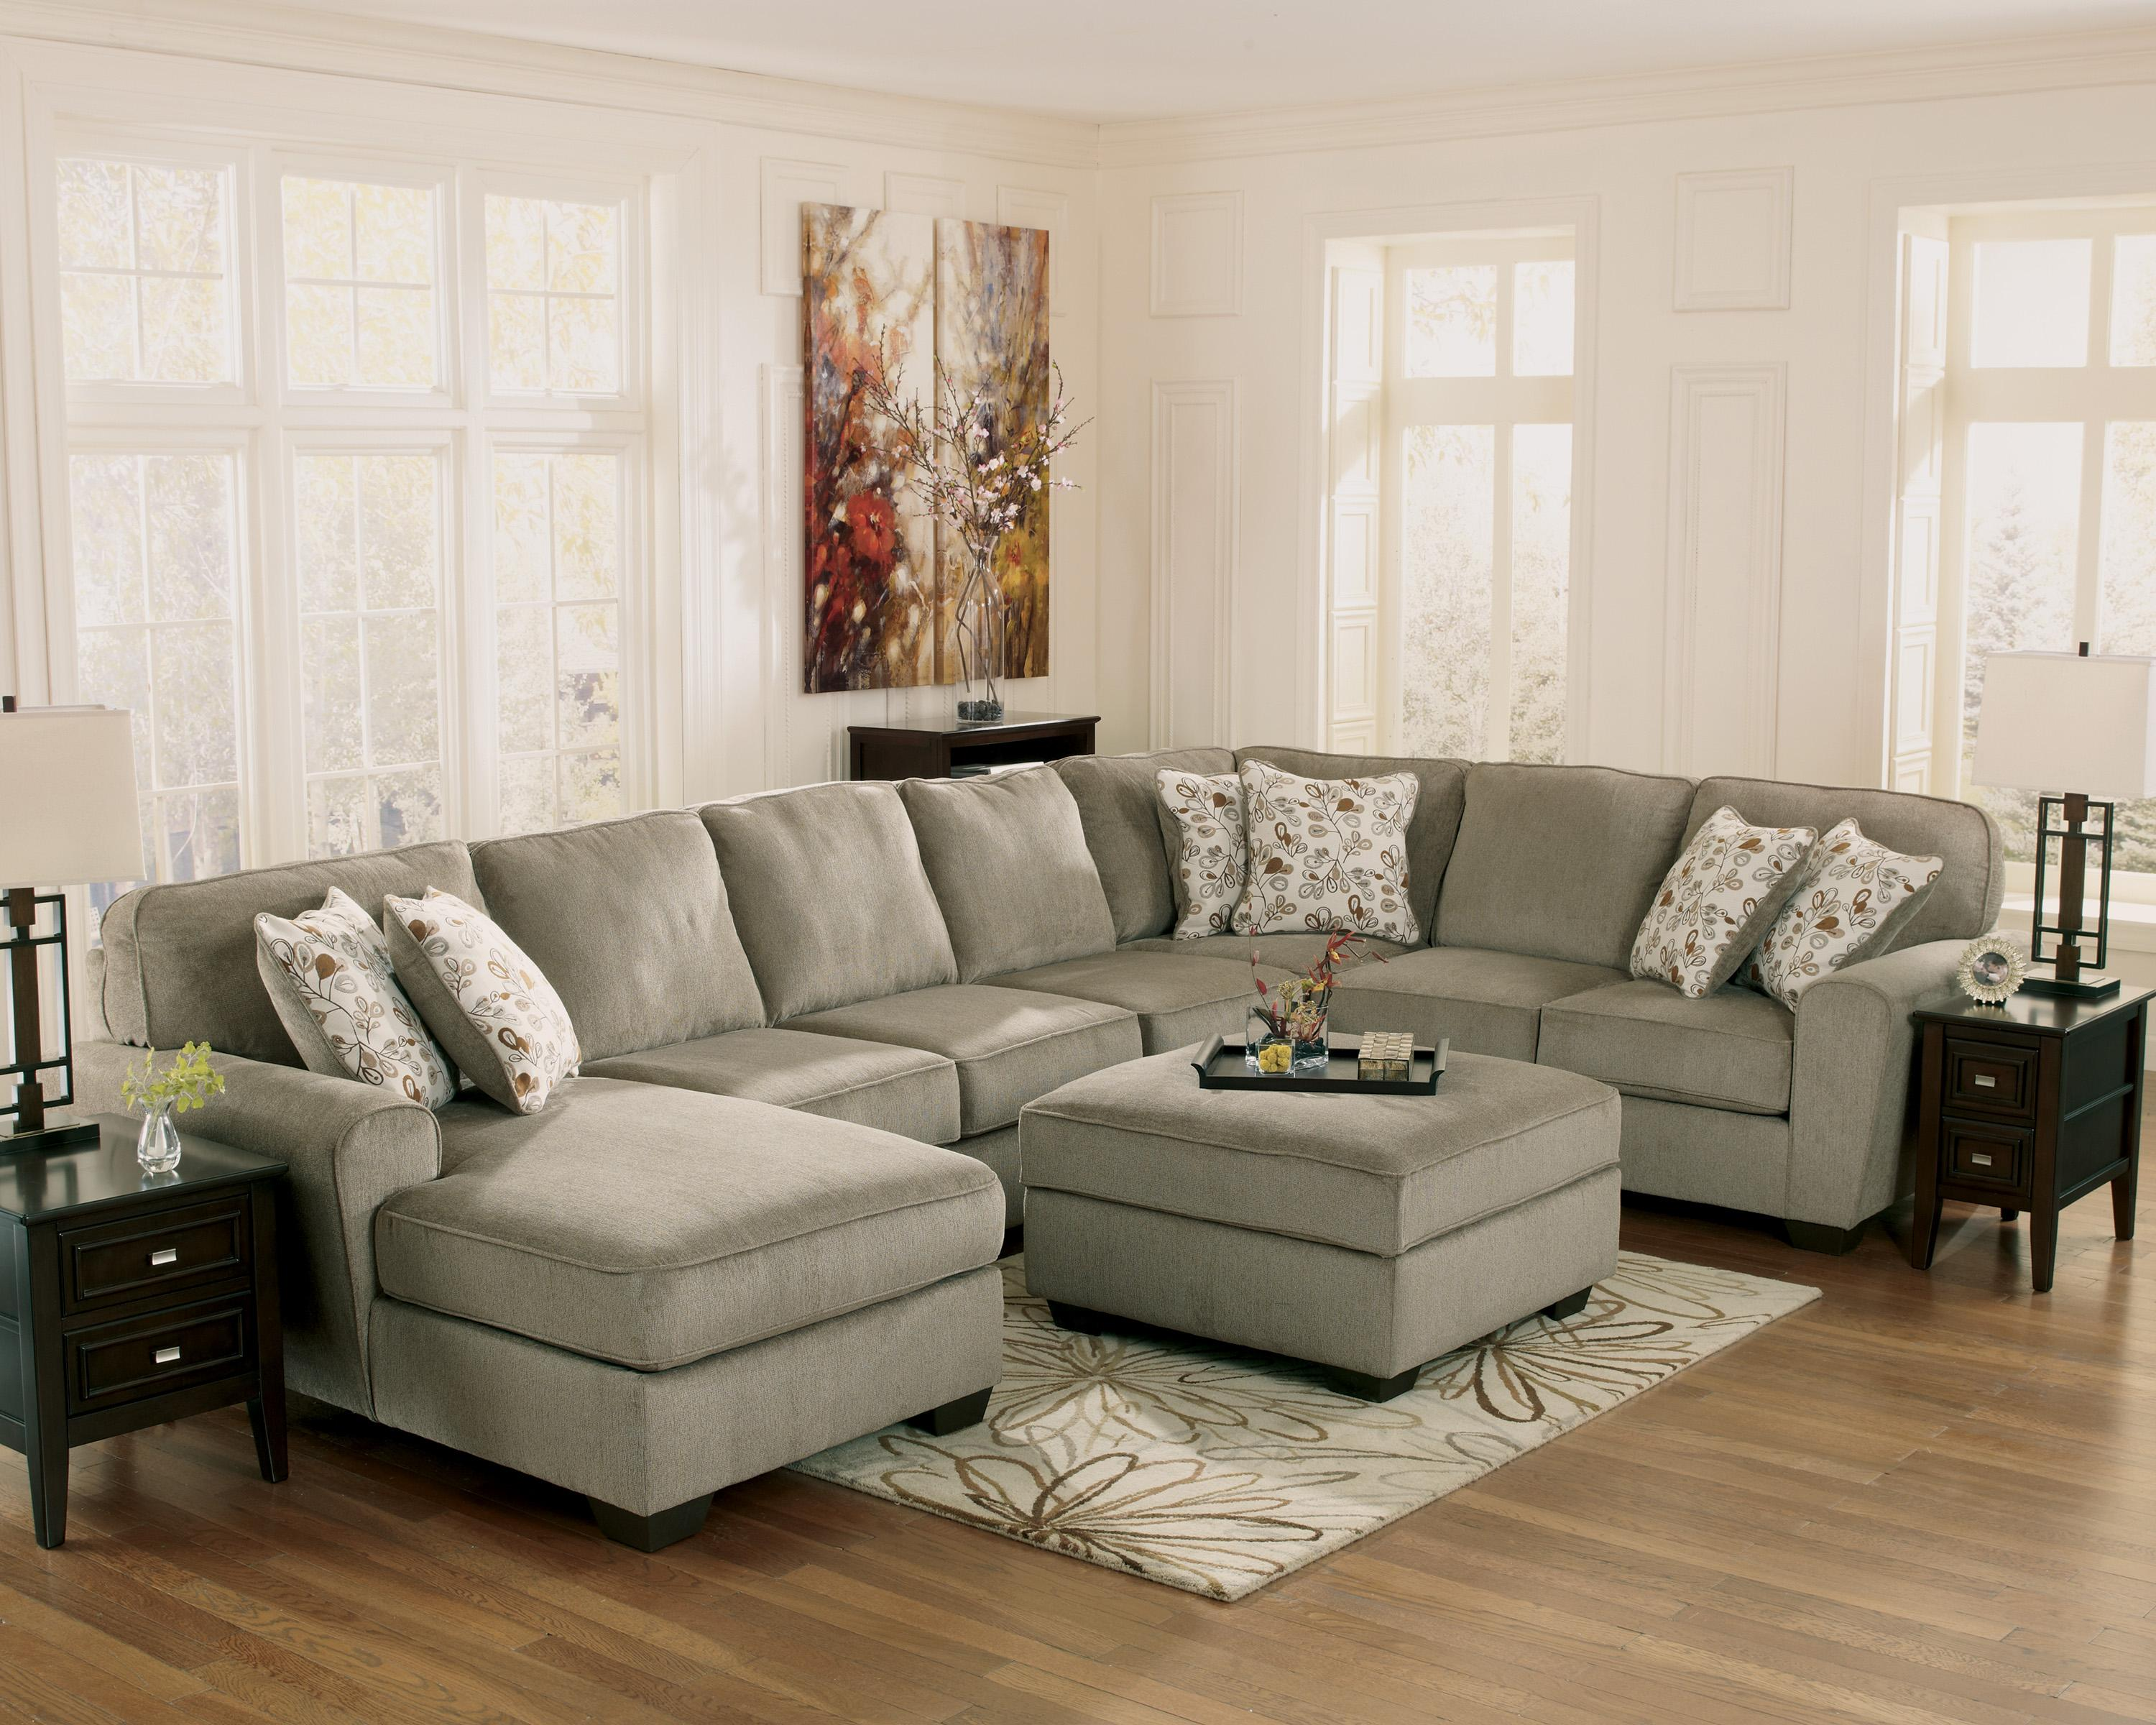 Patina 4-Piece Small Sectional with Right Cuddler - Rotmans - Sofa Sectional Worcester Boston MA Providence RI and New England : ashley furniture sectionals - Sectionals, Sofas & Couches